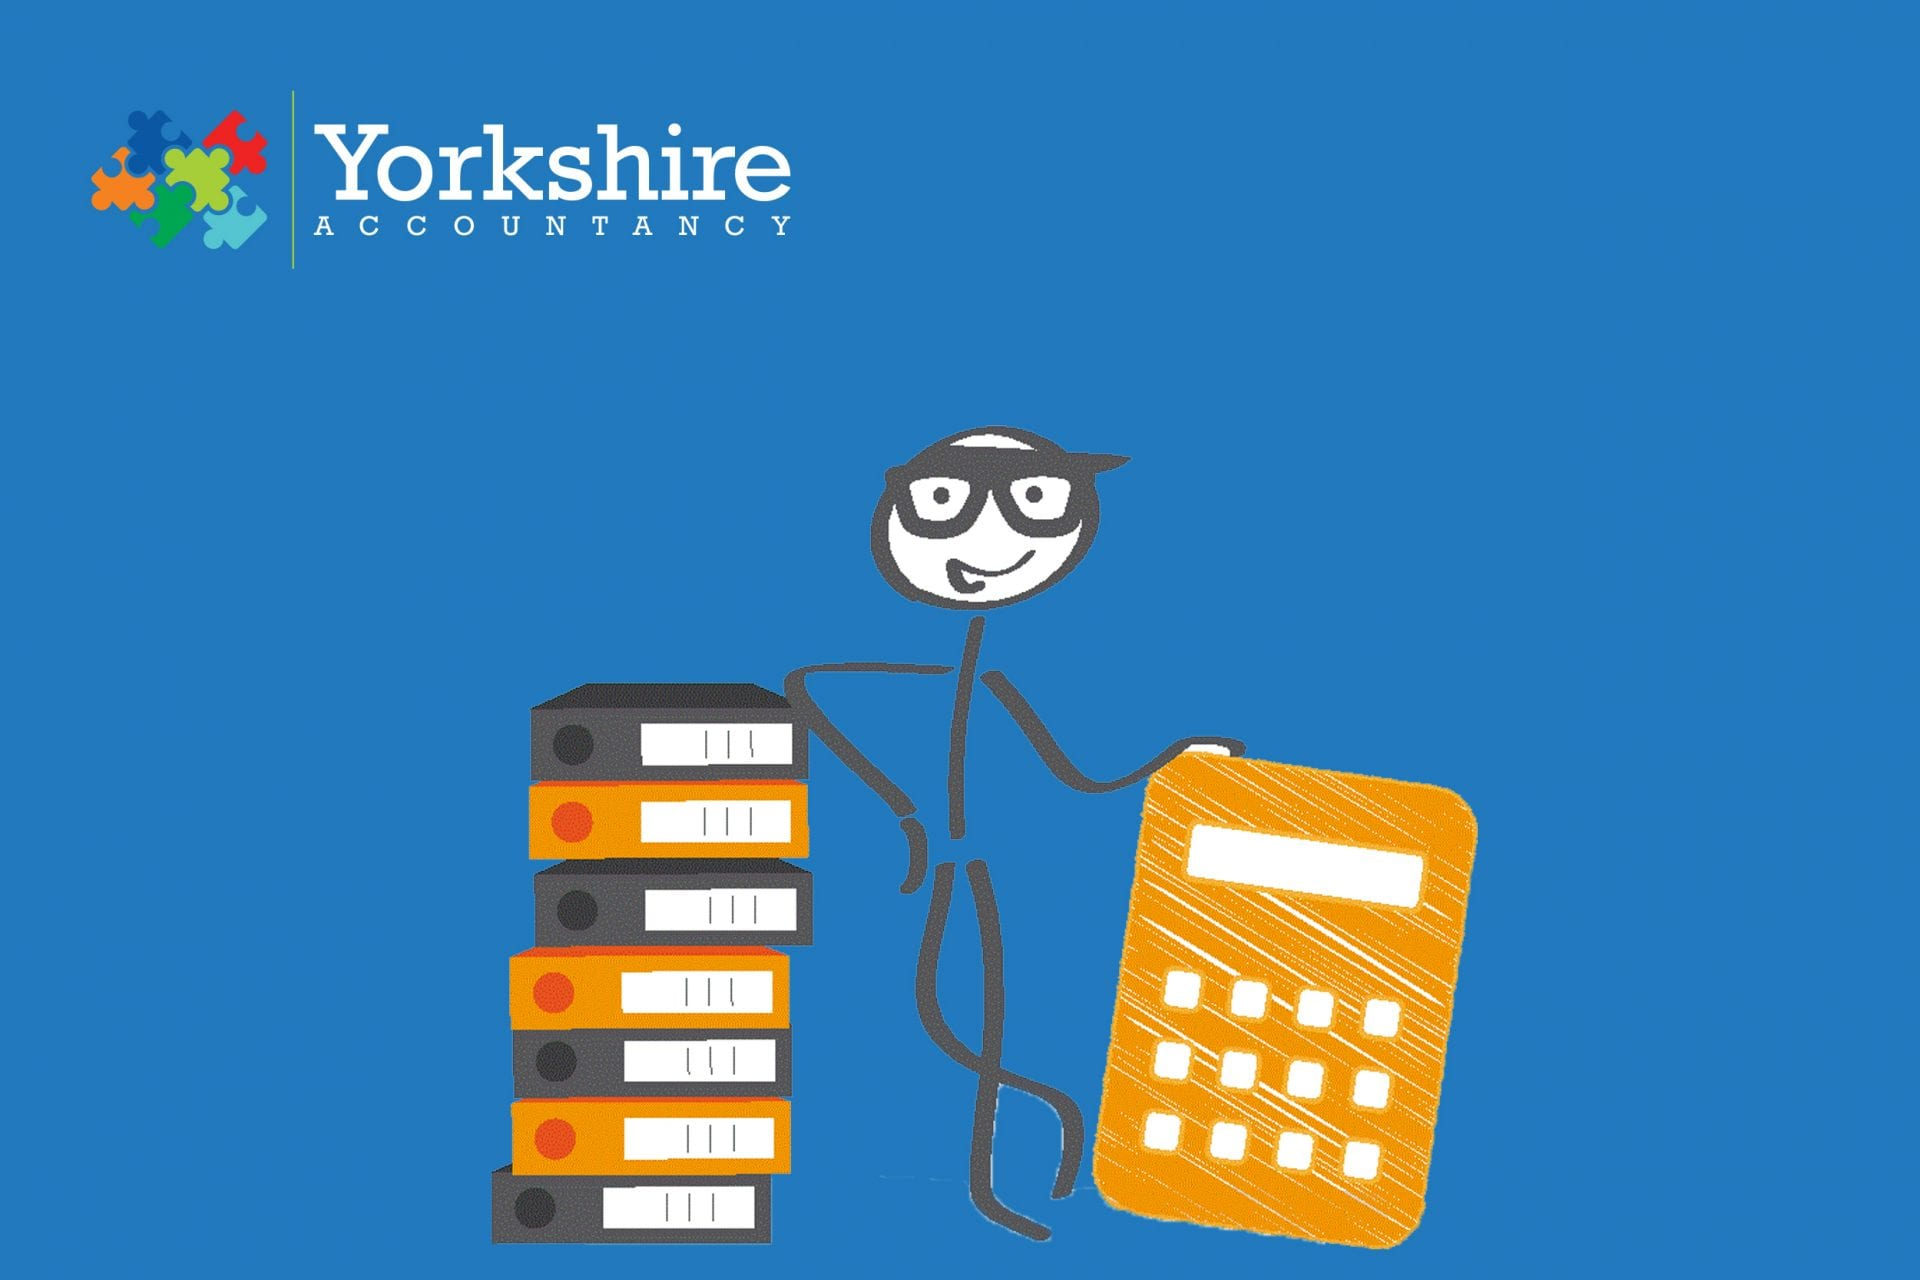 Fully managed accounts from Yorkshire Accountancy